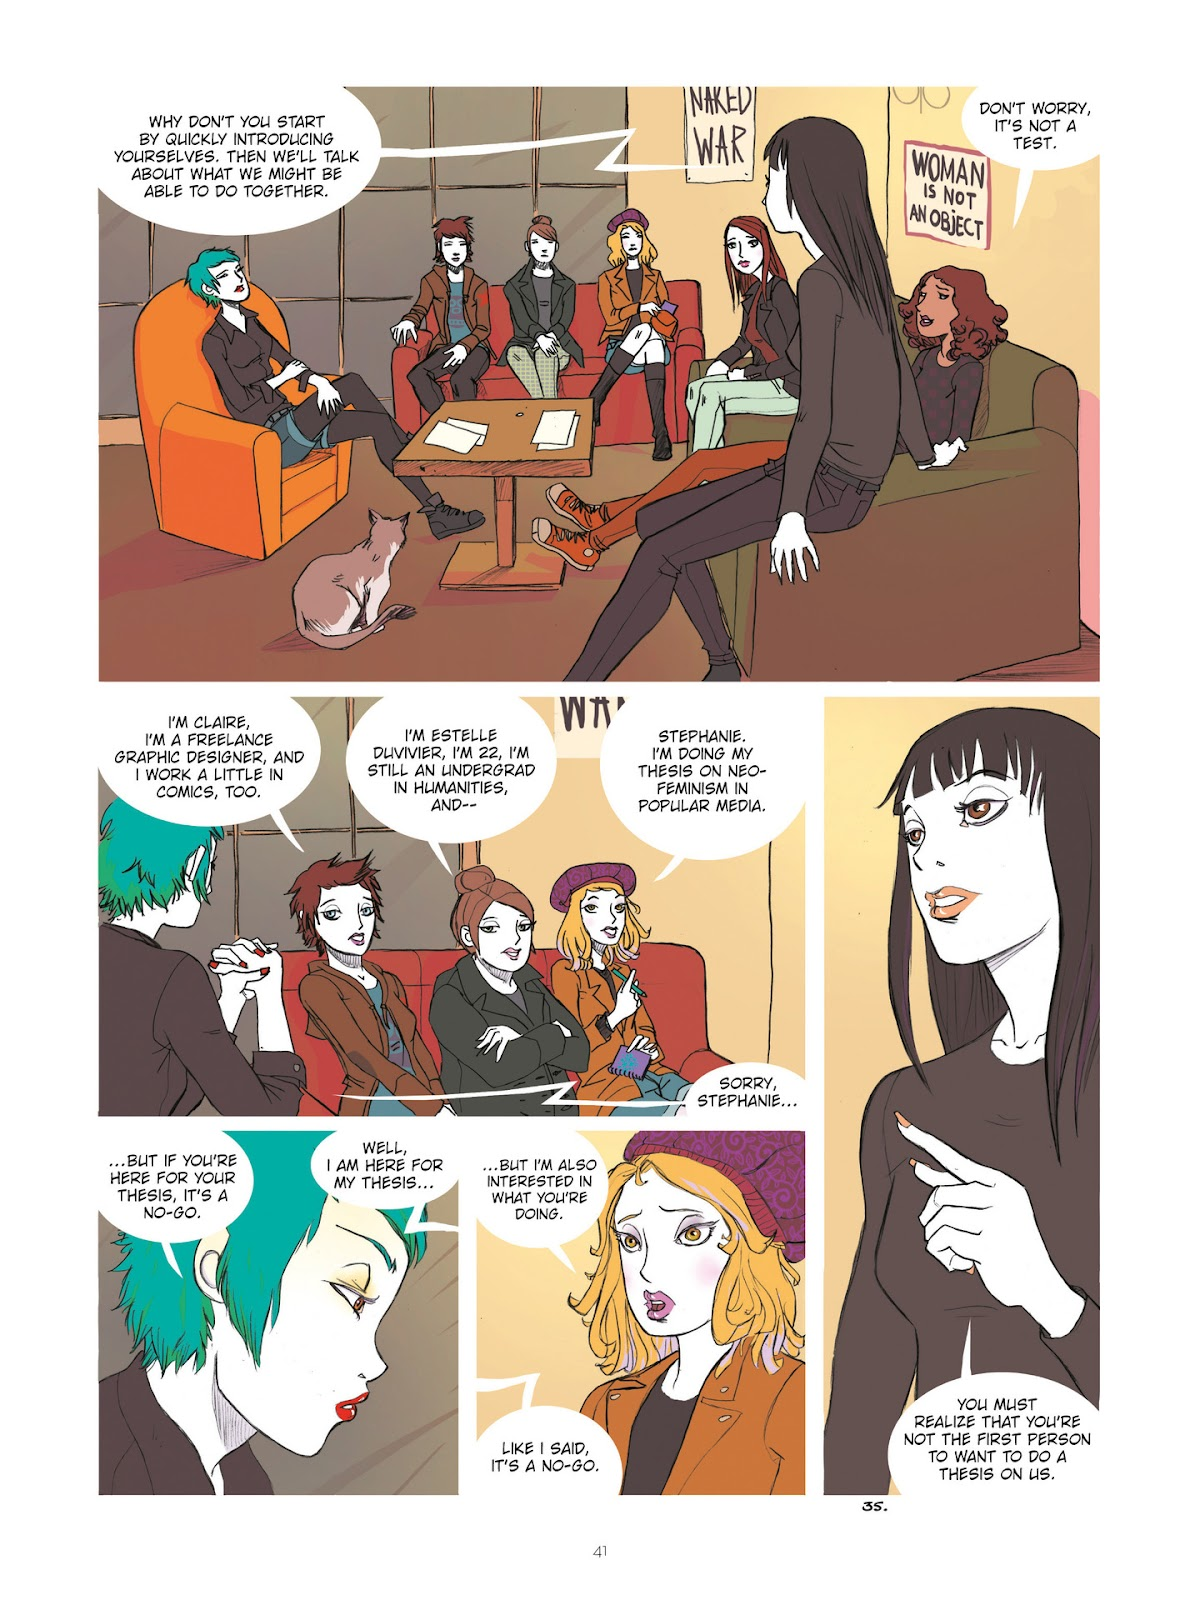 Read online Diary of A Femen comic -  Issue # TPB - 43